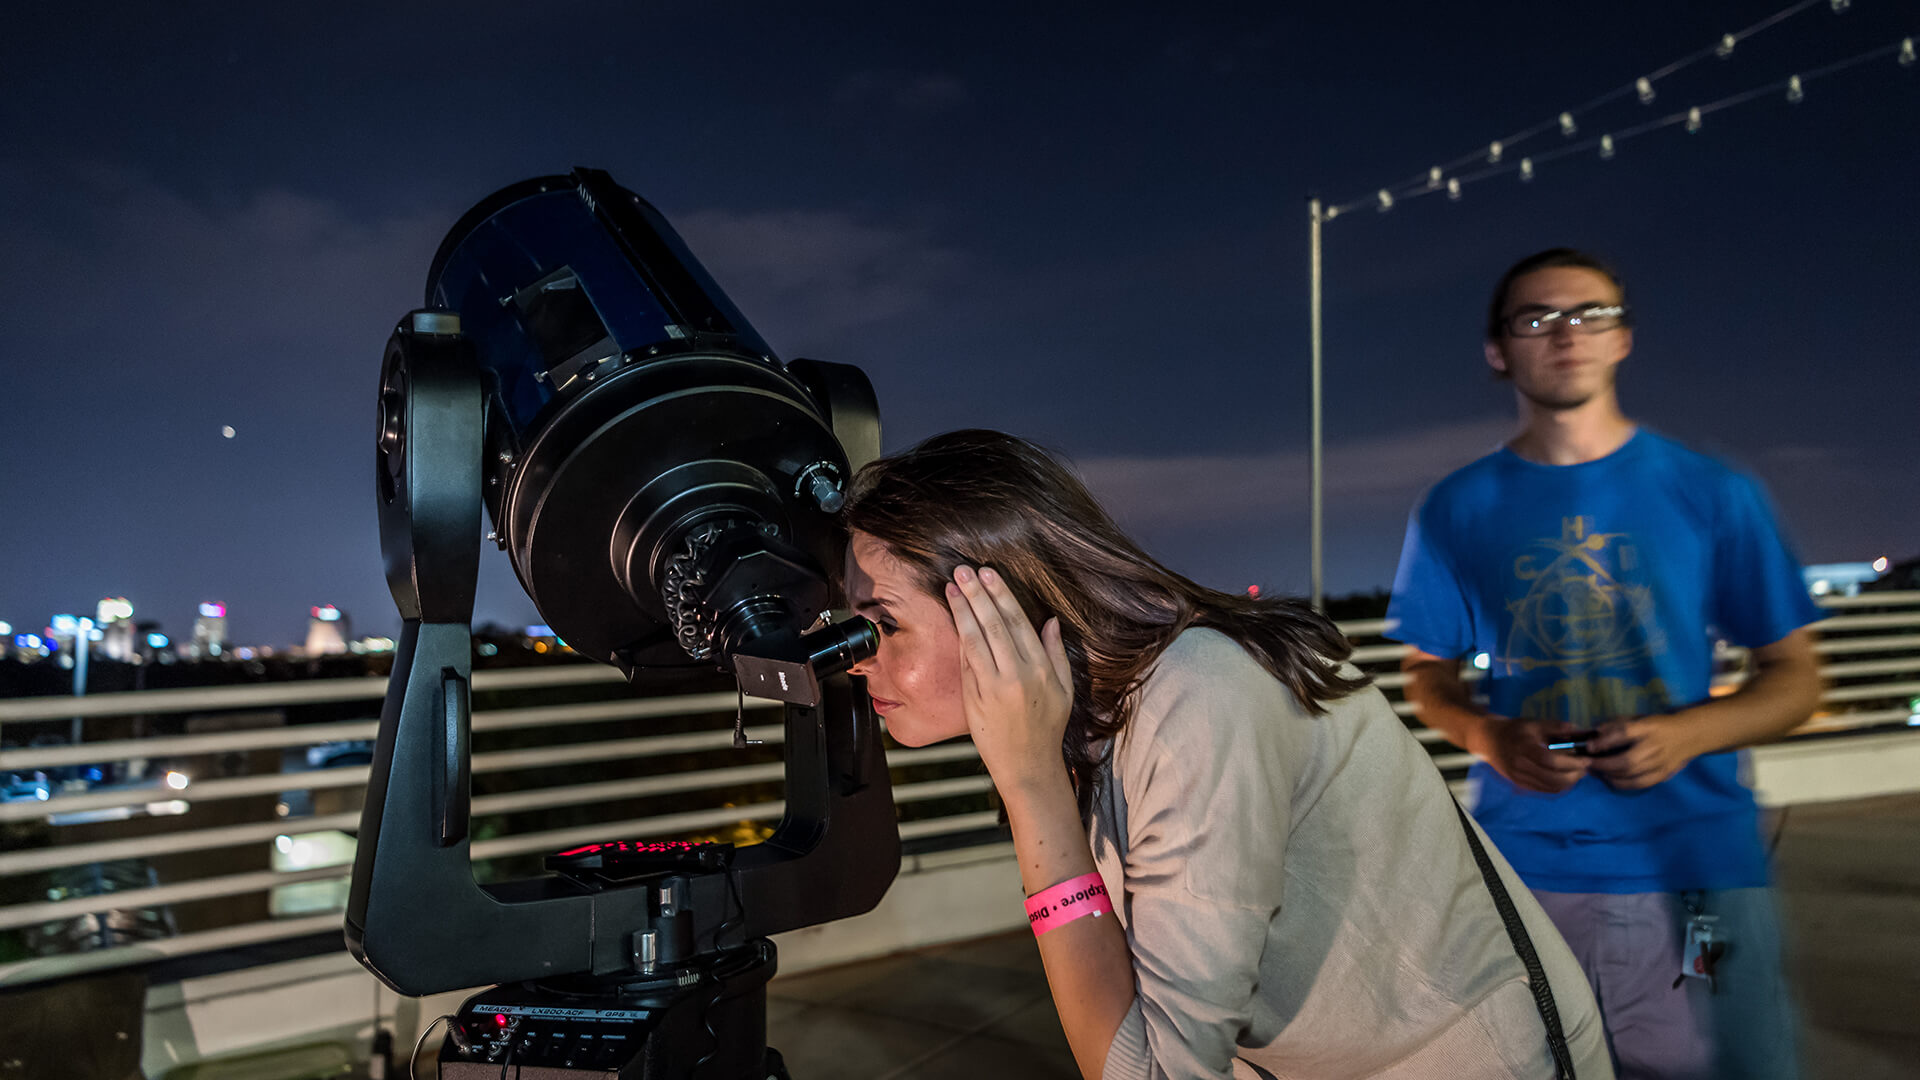 Guest stargazing through telescope outside on the Terrace at Orlando Science Center.